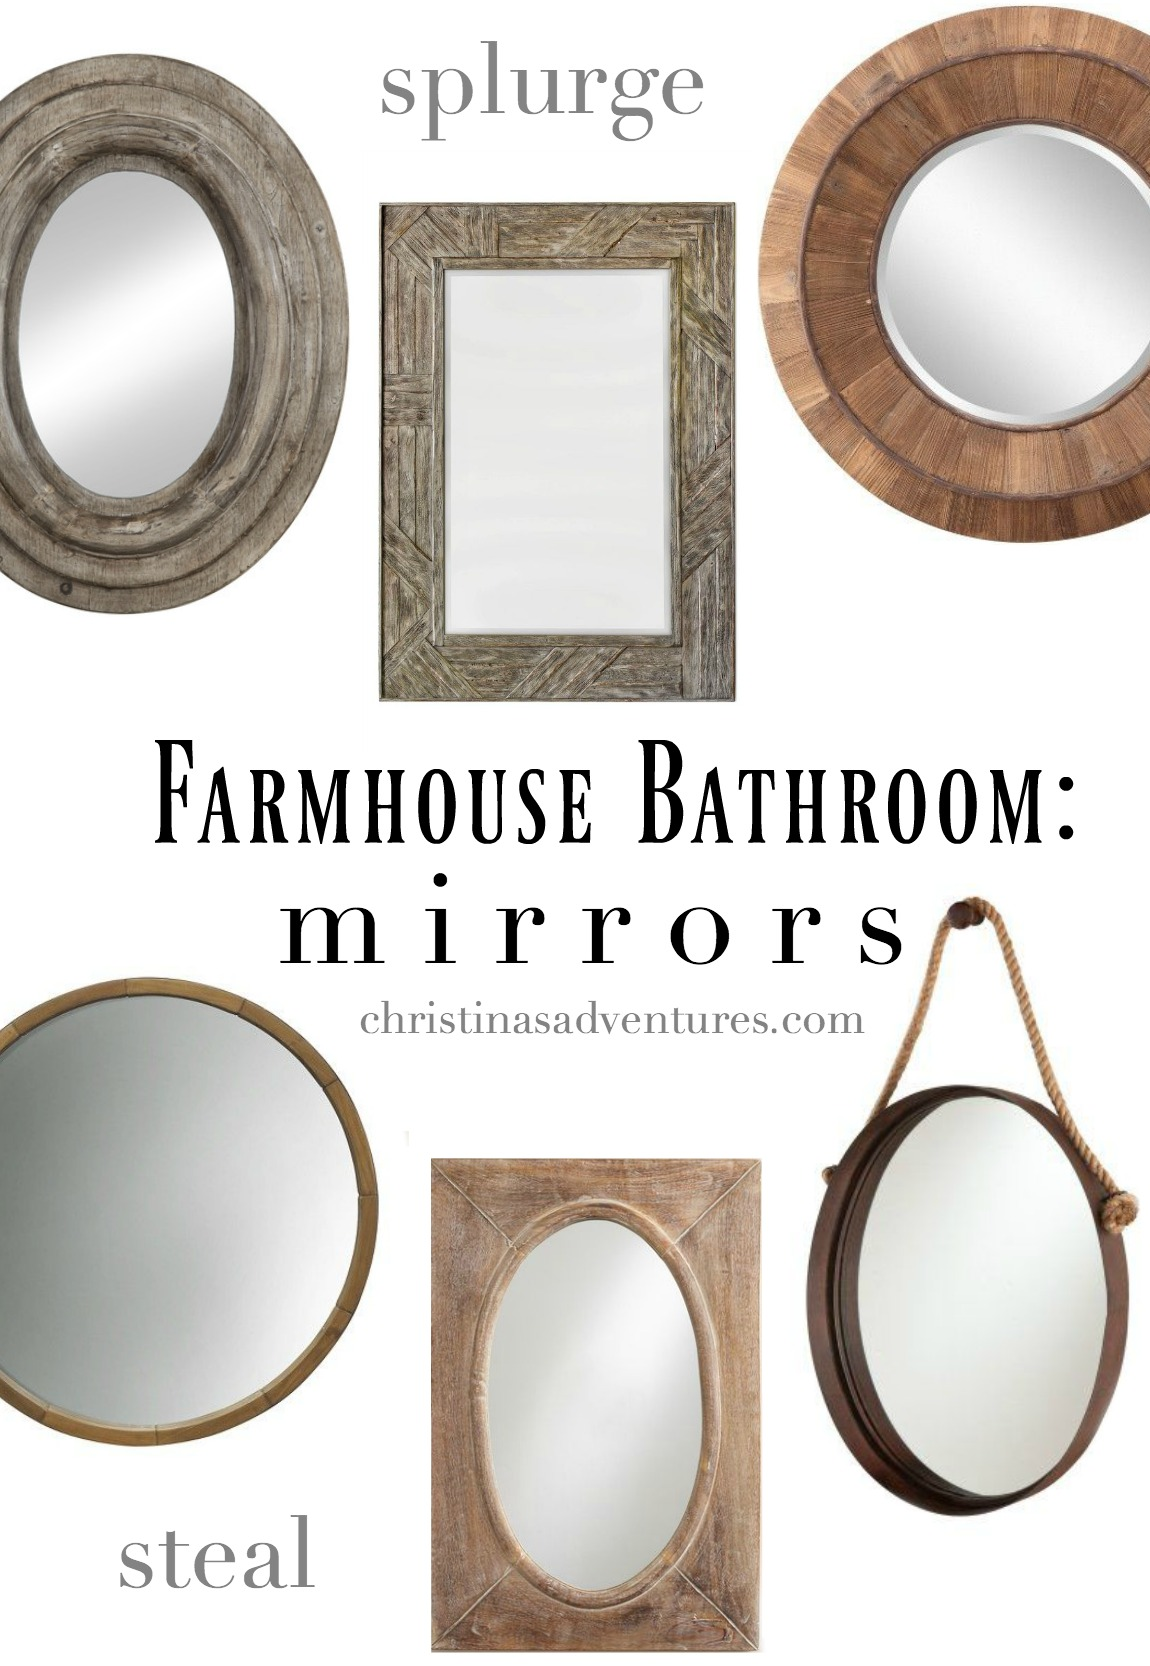 Farmhouse Bathroom Design Christinas Adventures